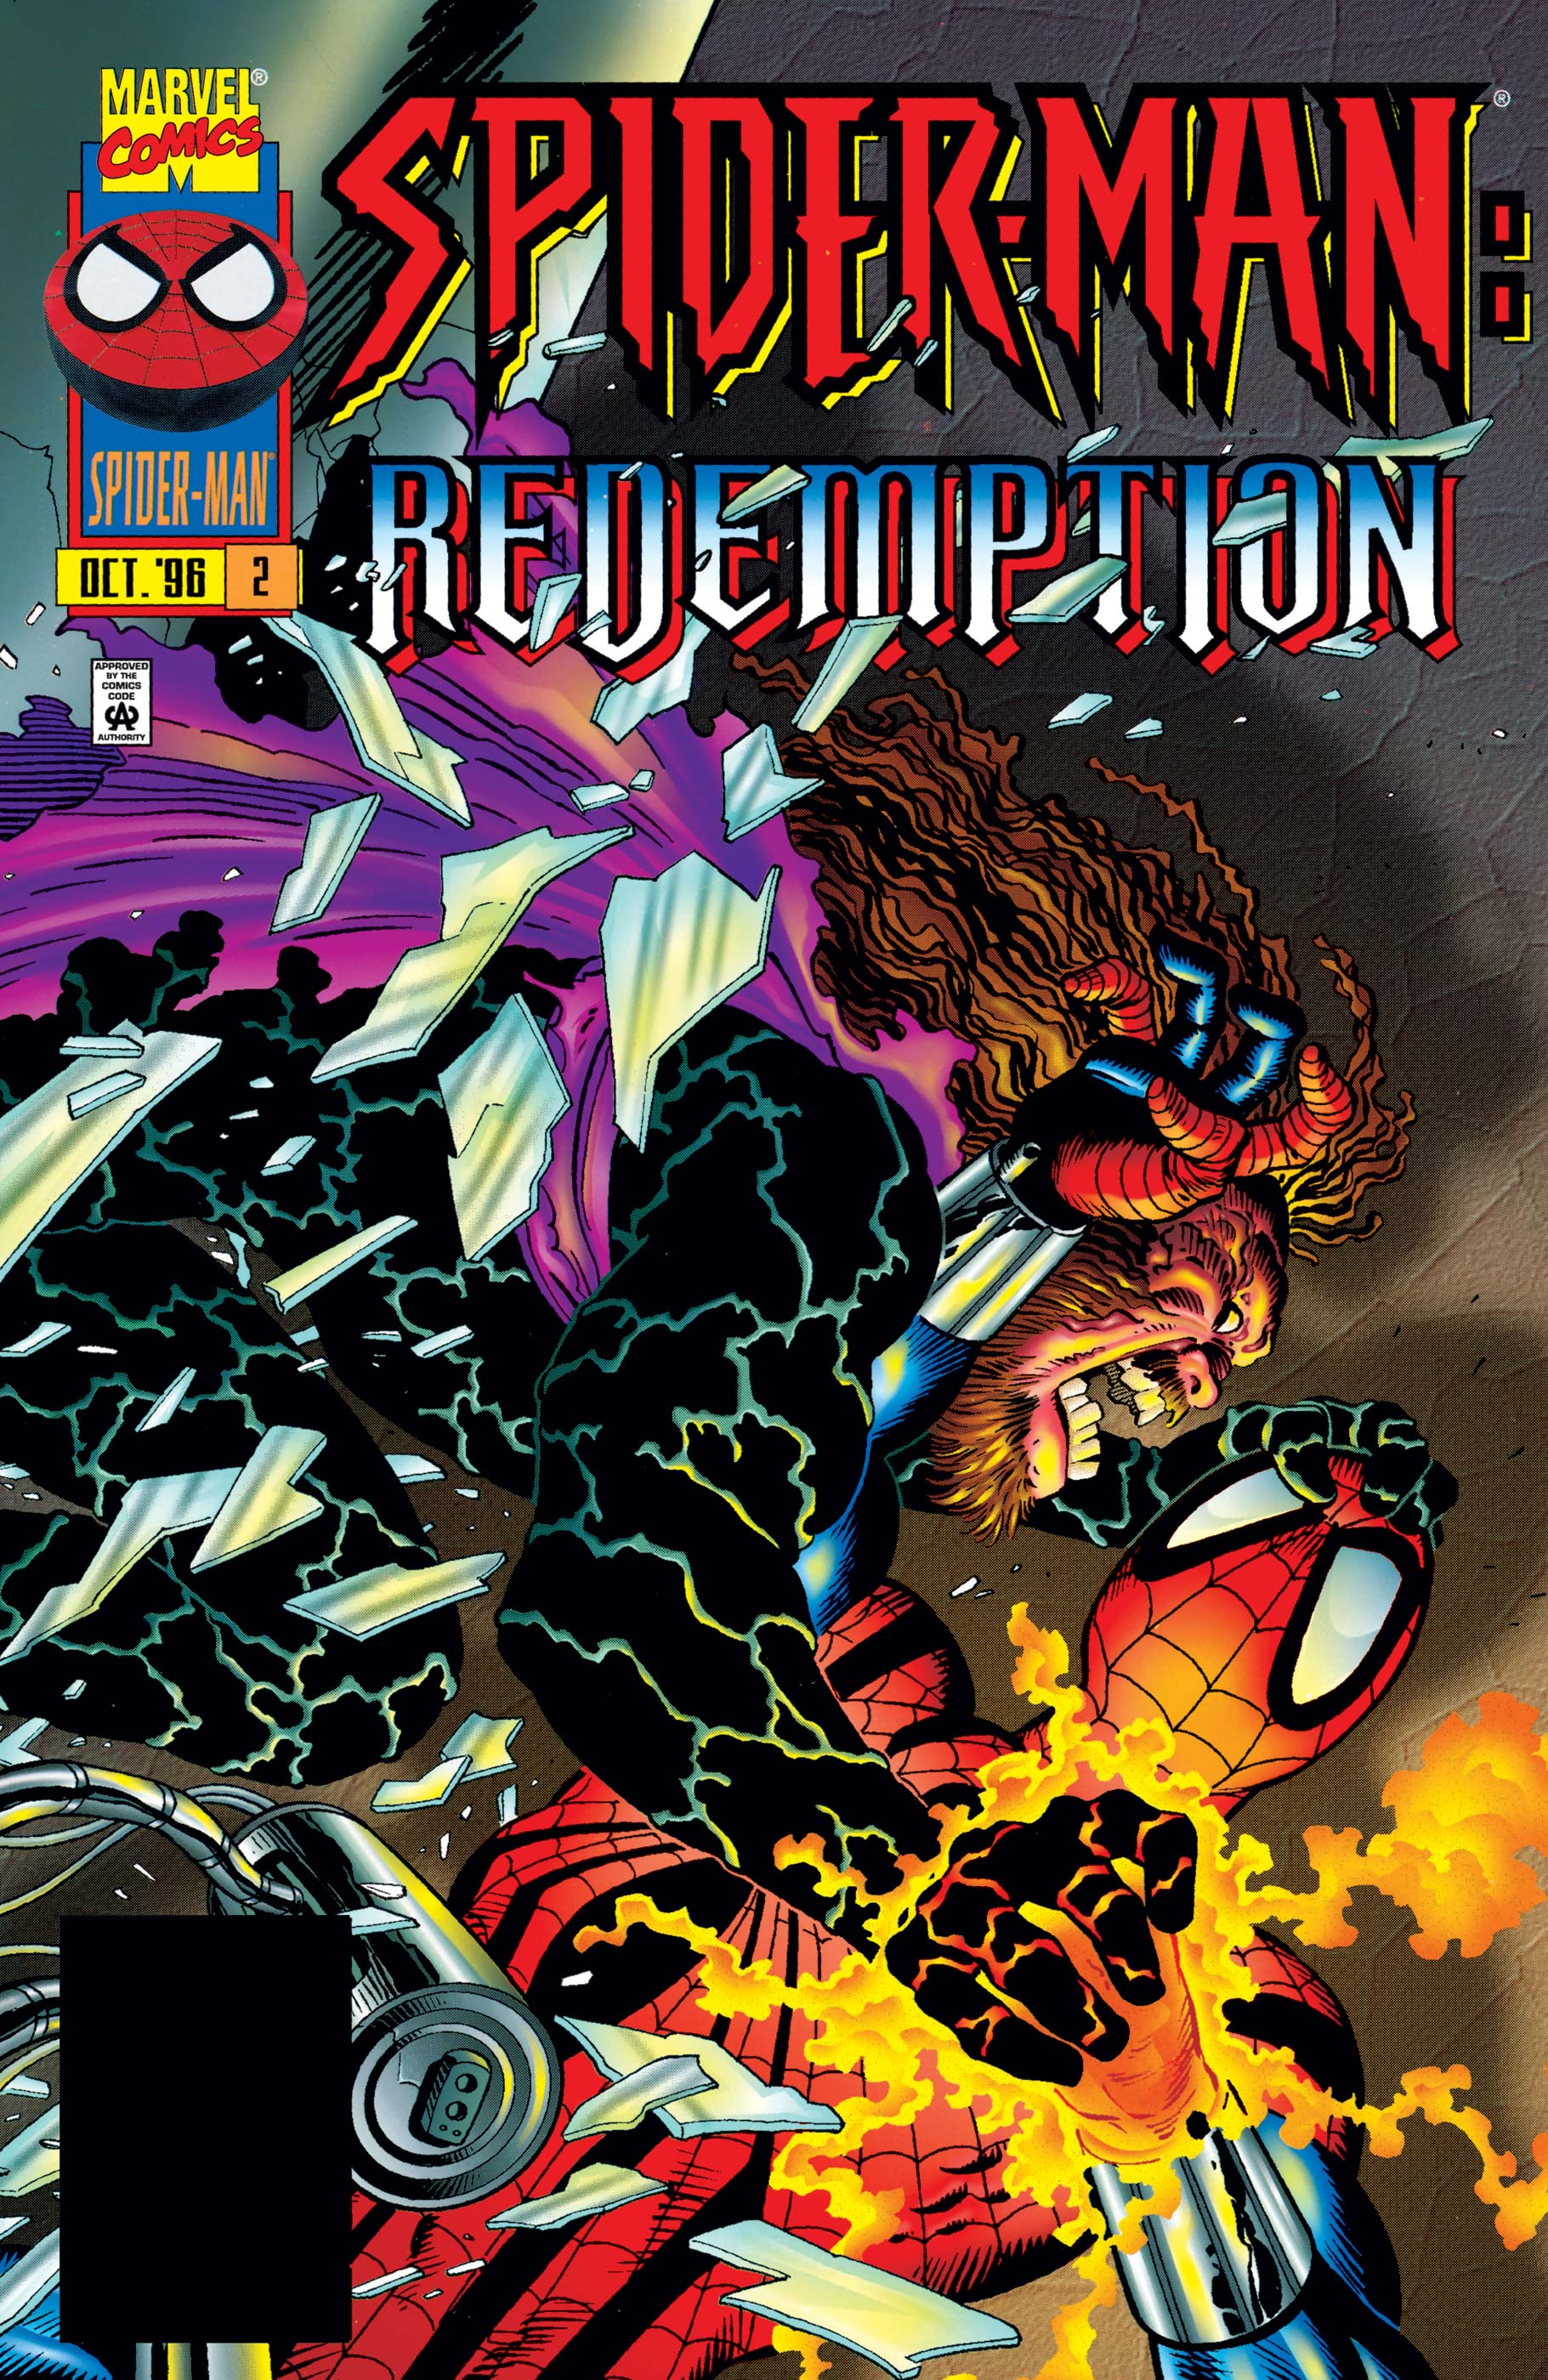 Spider-Man: Redemption Vol 1 2